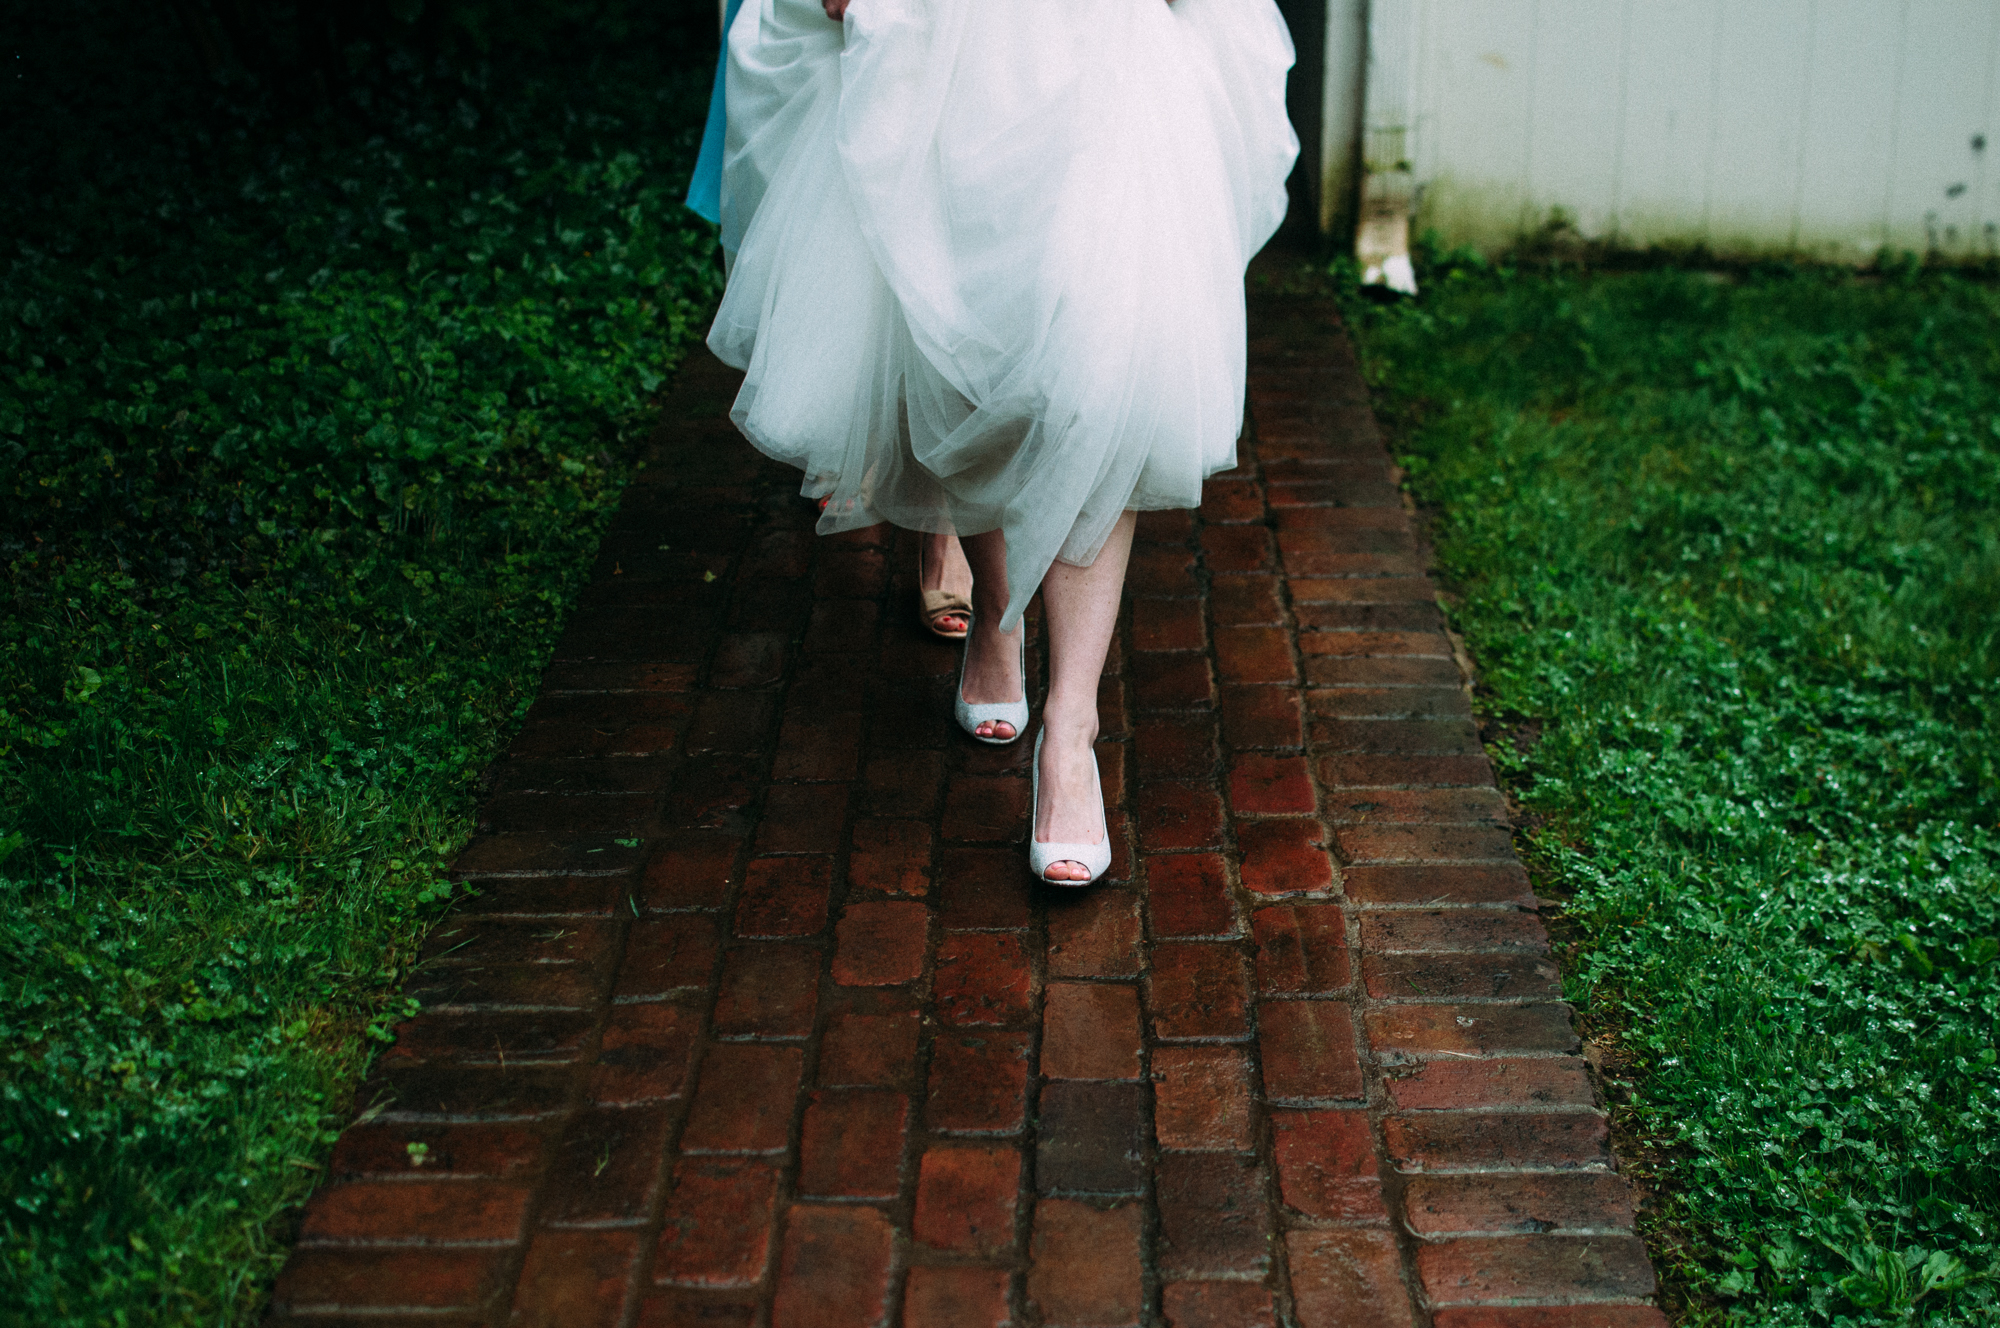 louisville wedding photographer-1.jpg